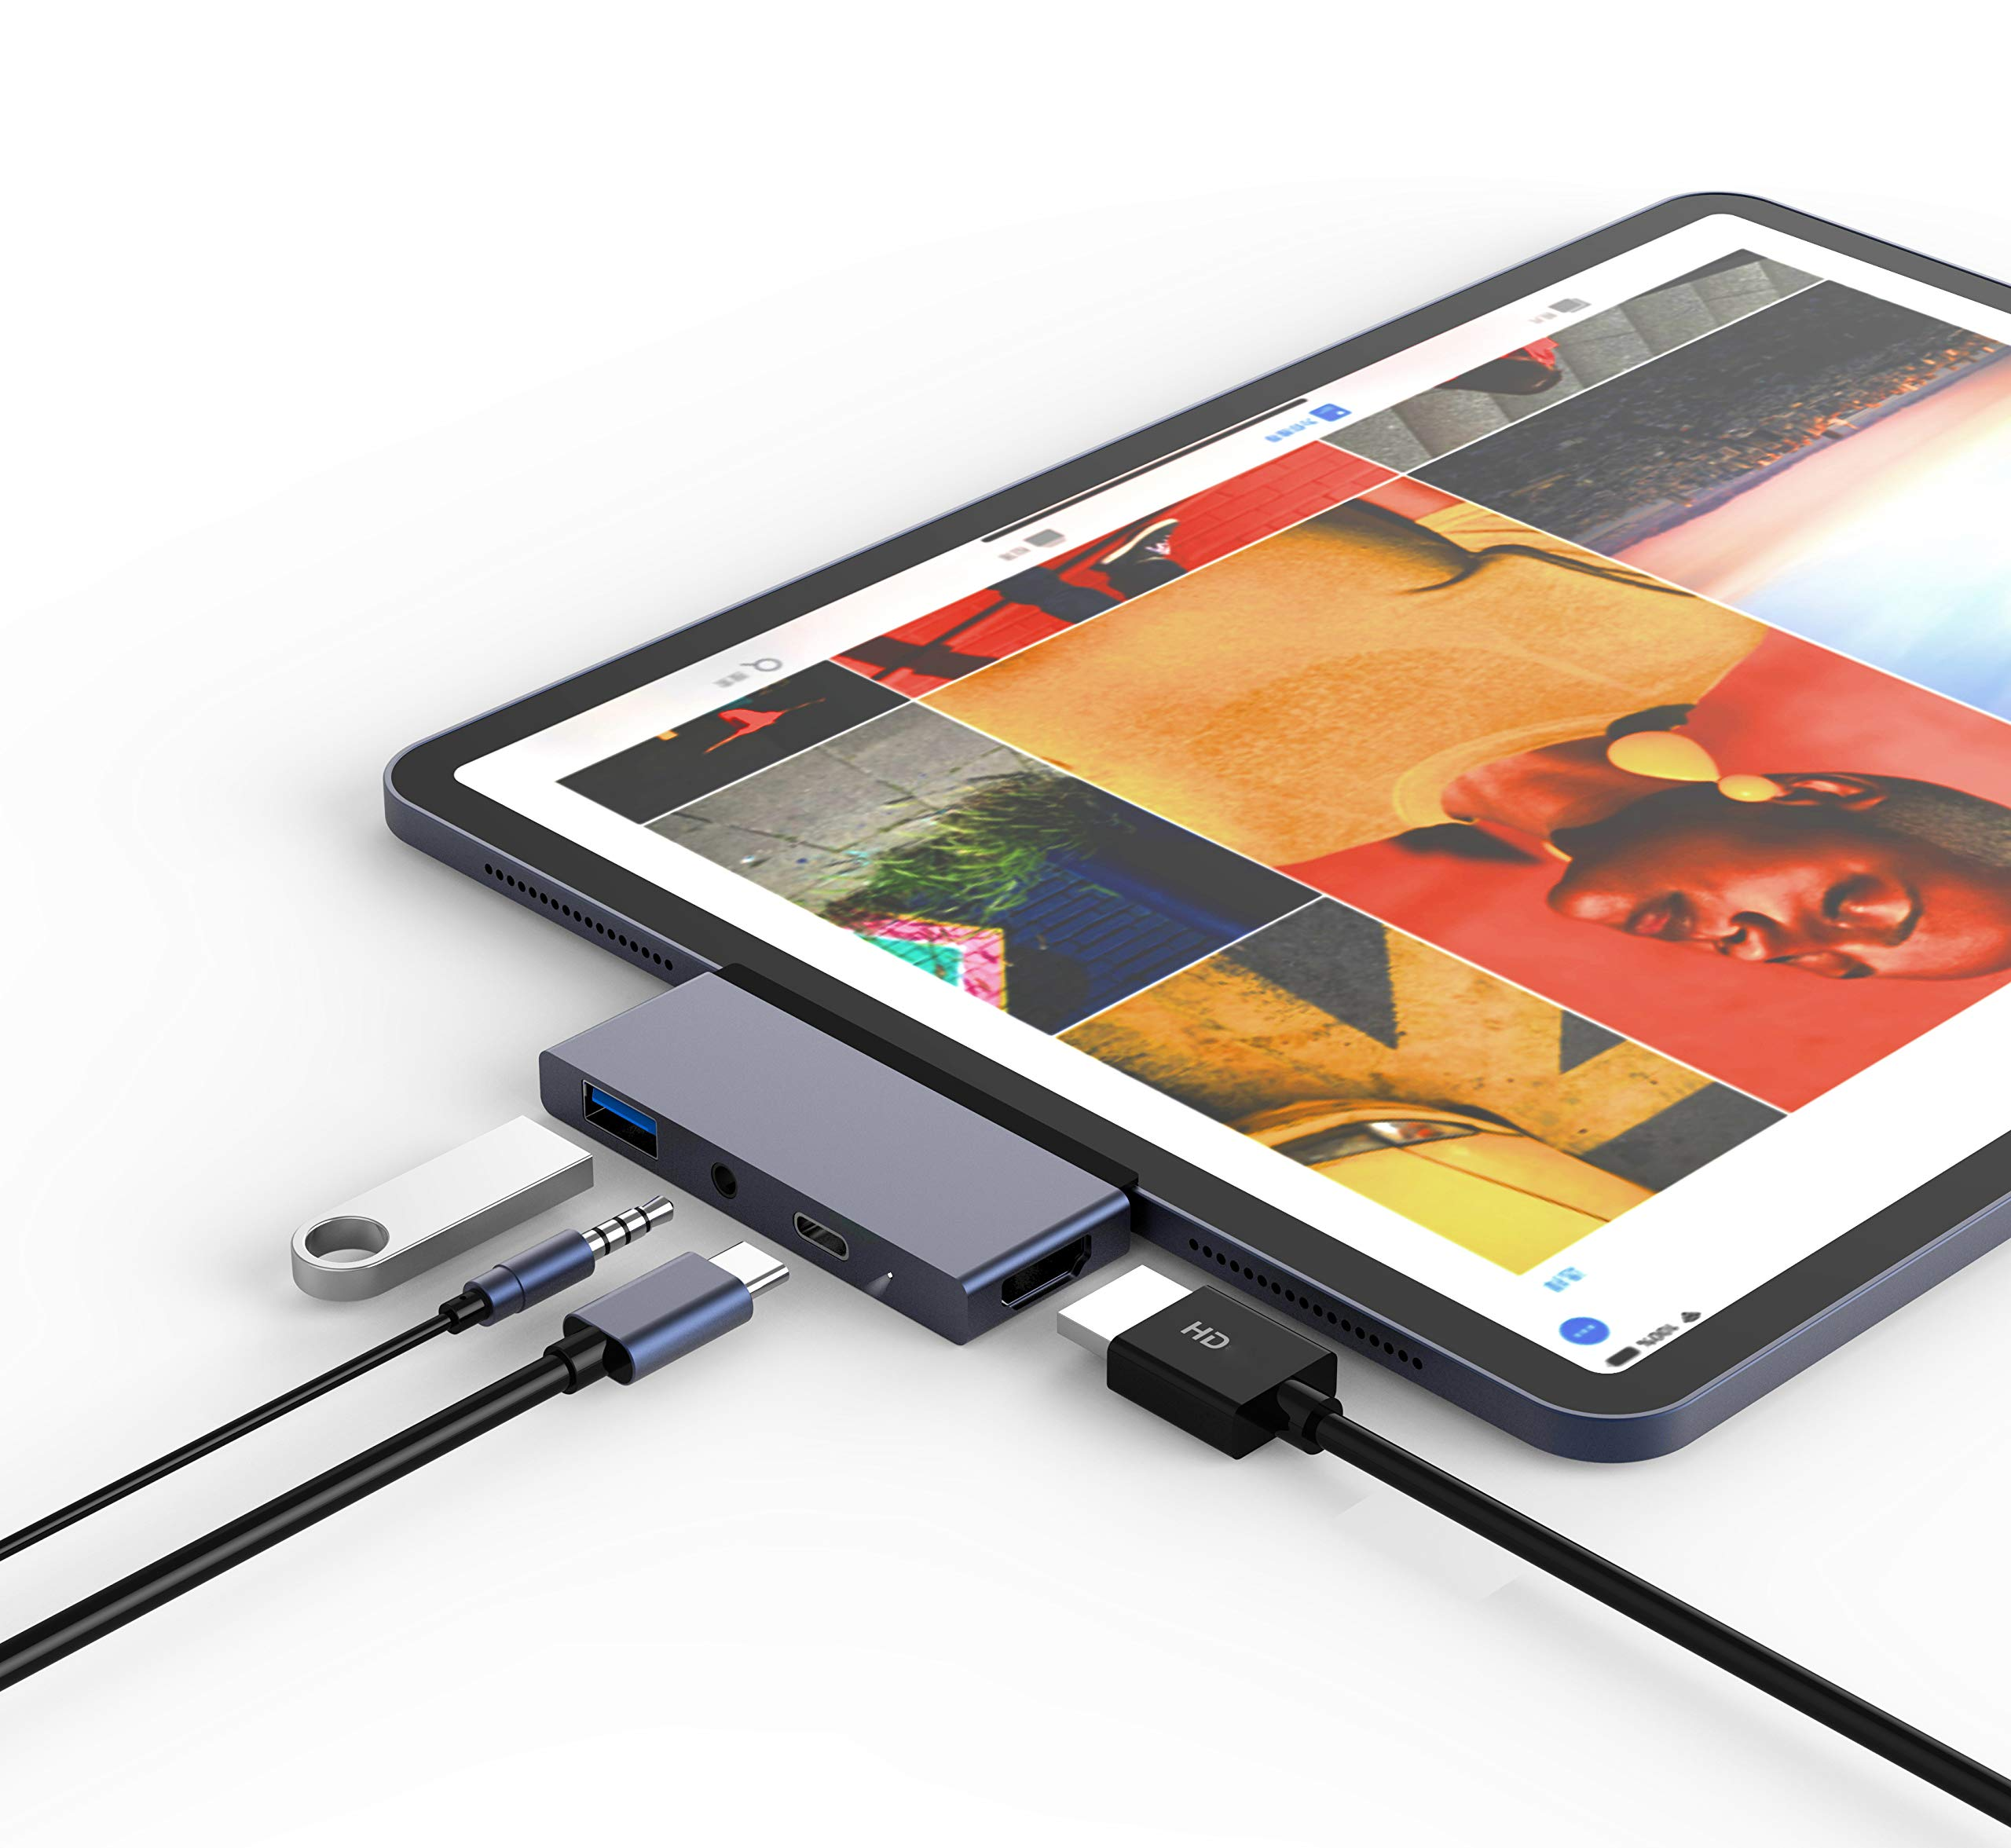 USB Type-C Hub Dongle Adapter for iPad Pro 2018-4 in 1 USB C Hub with 4k HDMI, 3.5mm Headphone Jack, USB 3.0, PD Charging - Compatible with iPad Pro 11''/12.9'' 2018 & MacBook Pro by YIanton